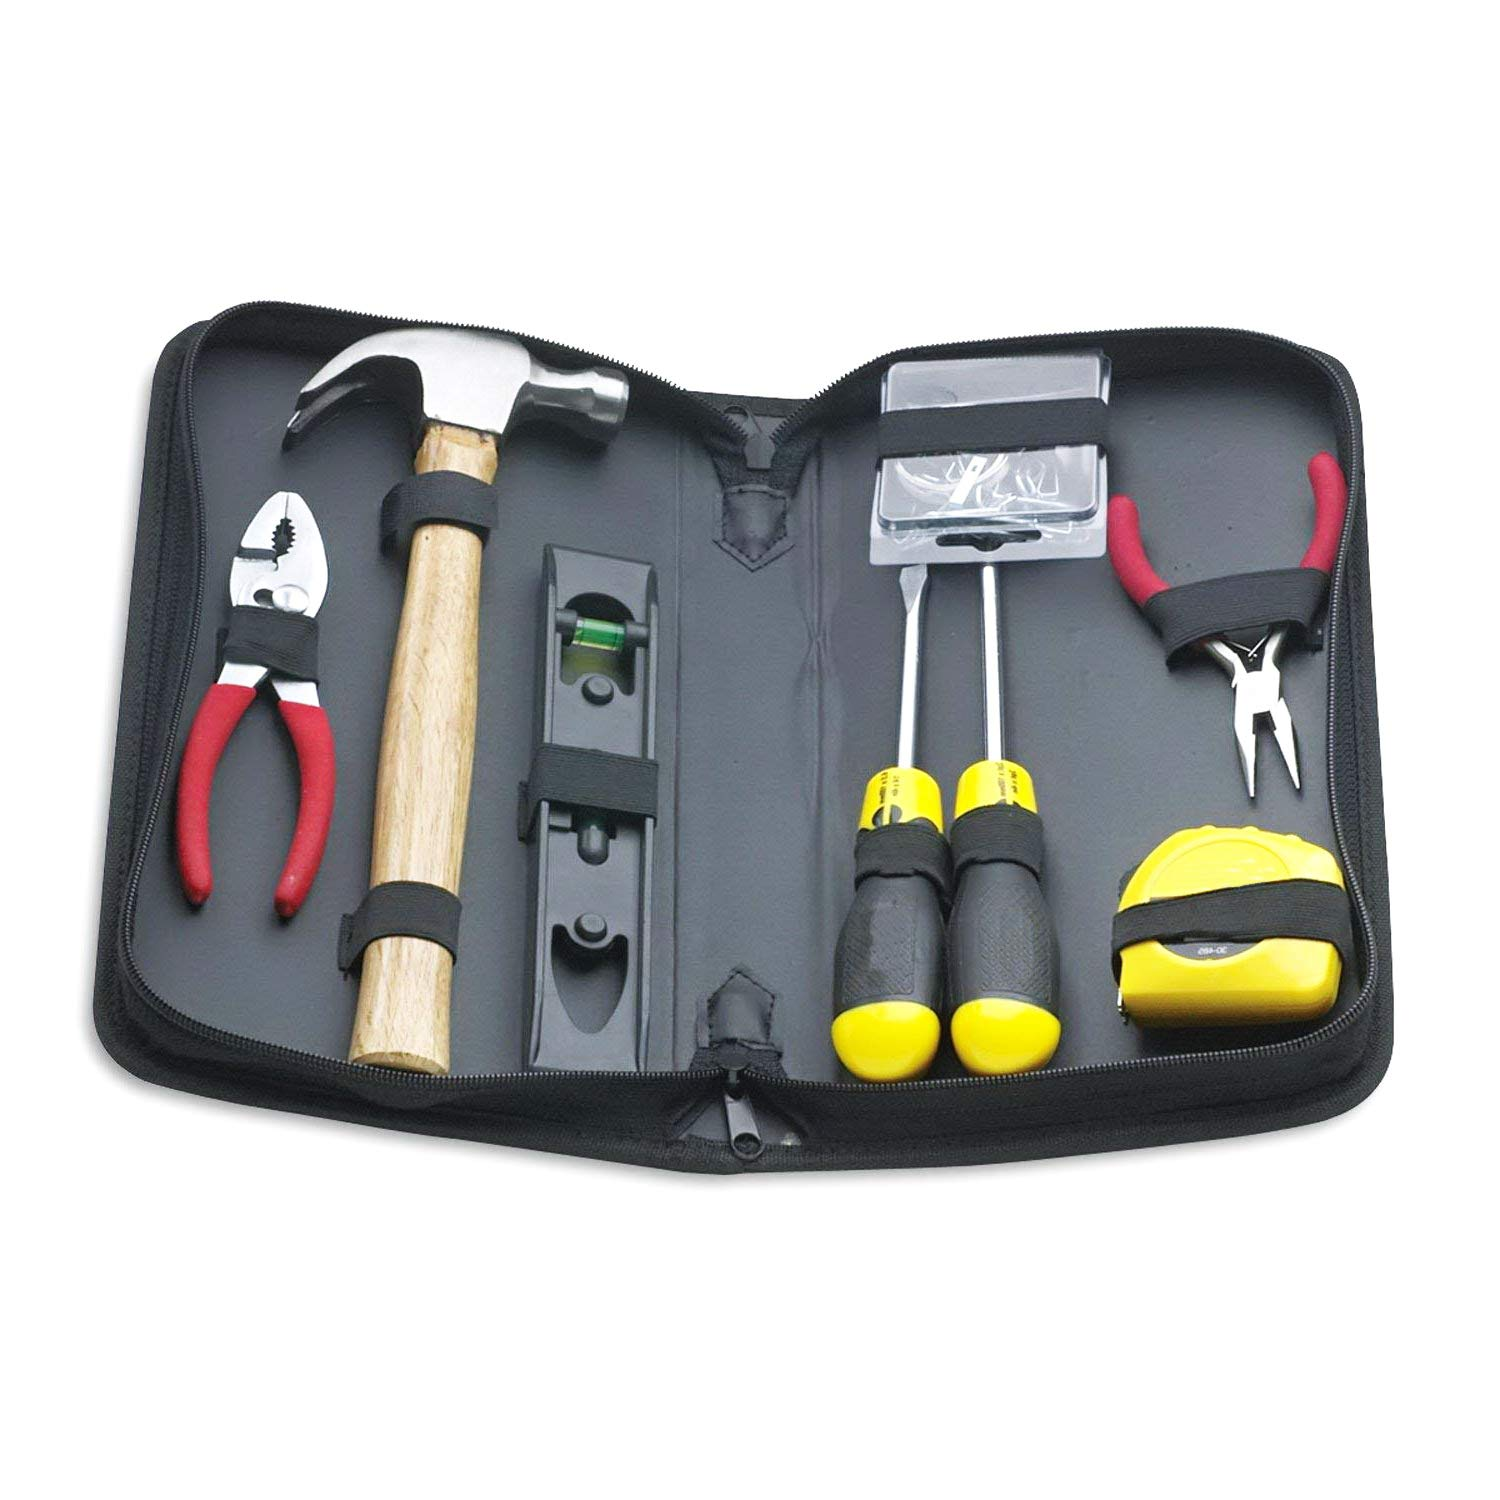 Tool Kit. Best Portable Big Basic Starter Professional Household DIY Hand Mixed Repair Set W/Storage Case For Home, Garage, Office For Men&Women. Includes Screwdriver, Hammer, Pliers, Etc.